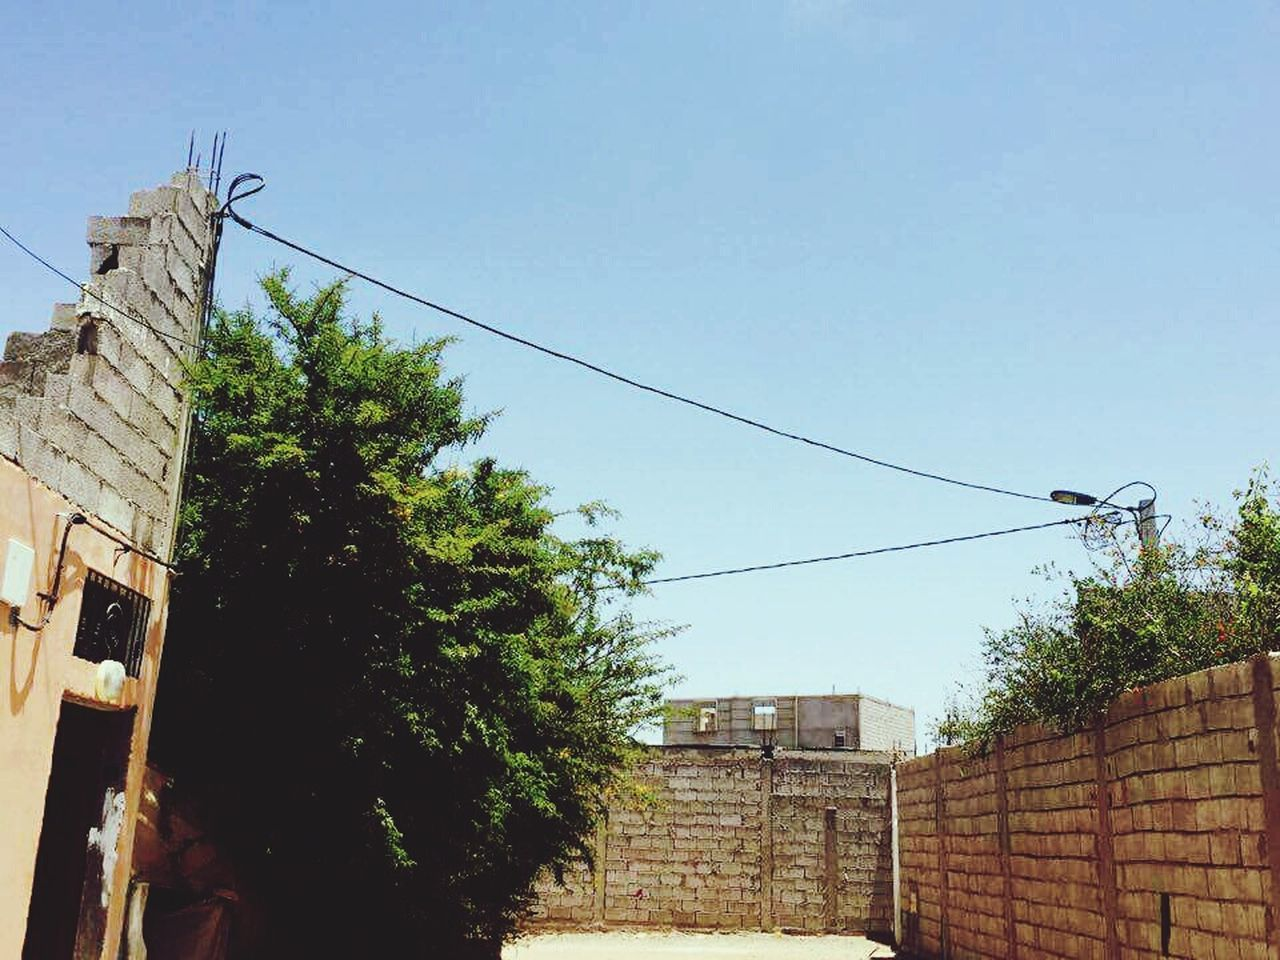 architecture, building exterior, tree, cable, built structure, day, power line, outdoors, sky, no people, low angle view, electricity, telephone line